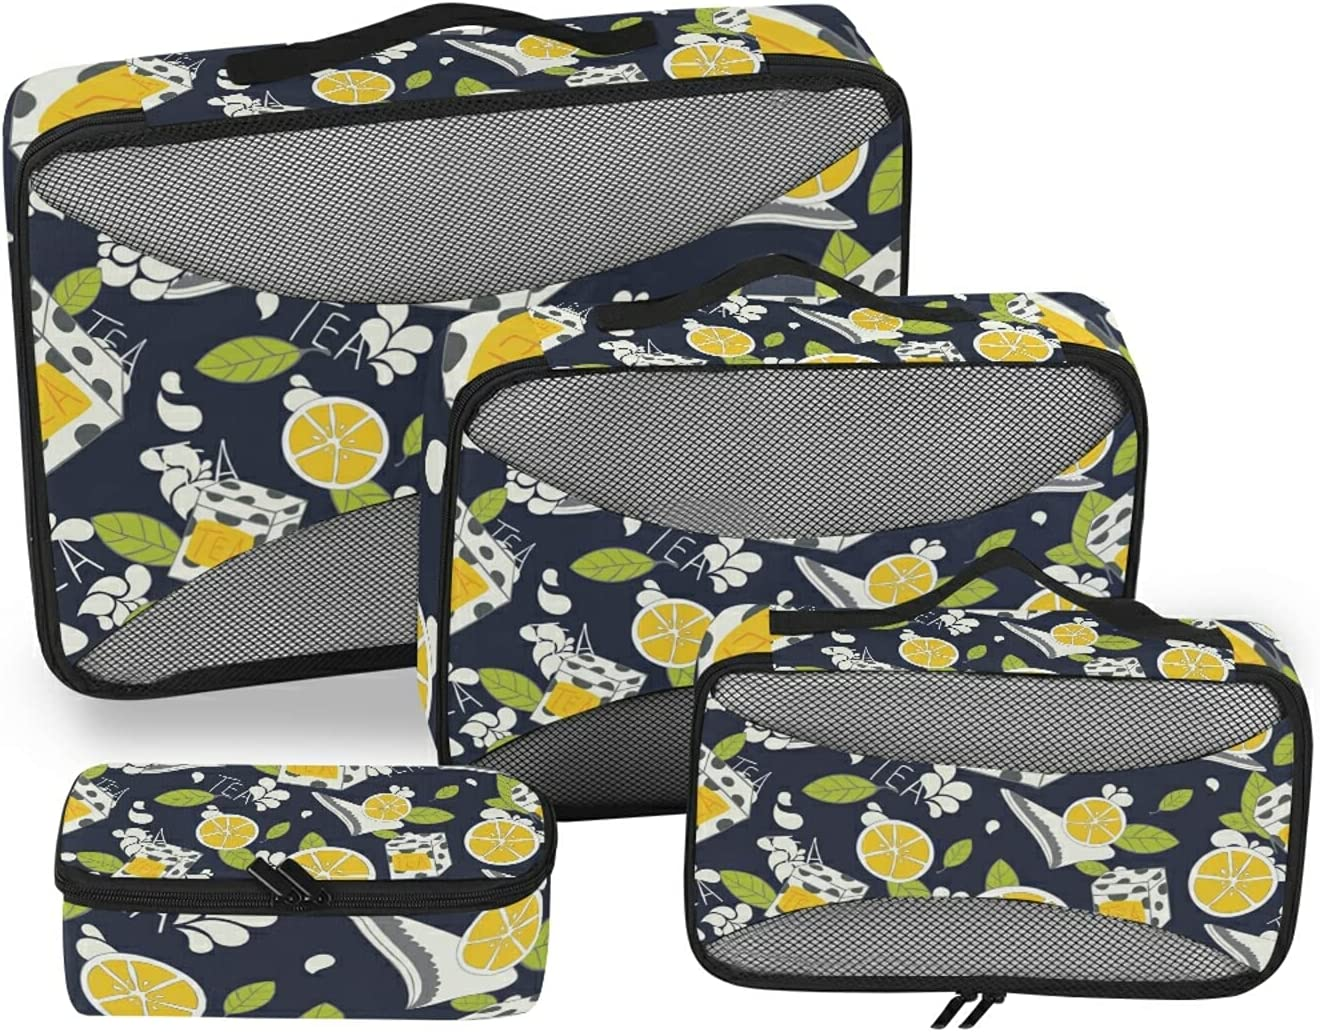 Tea Lemon Max 82% OFF Pattern Packing Storage Recommended Bag Organizer Acc Travel 4-Pcs